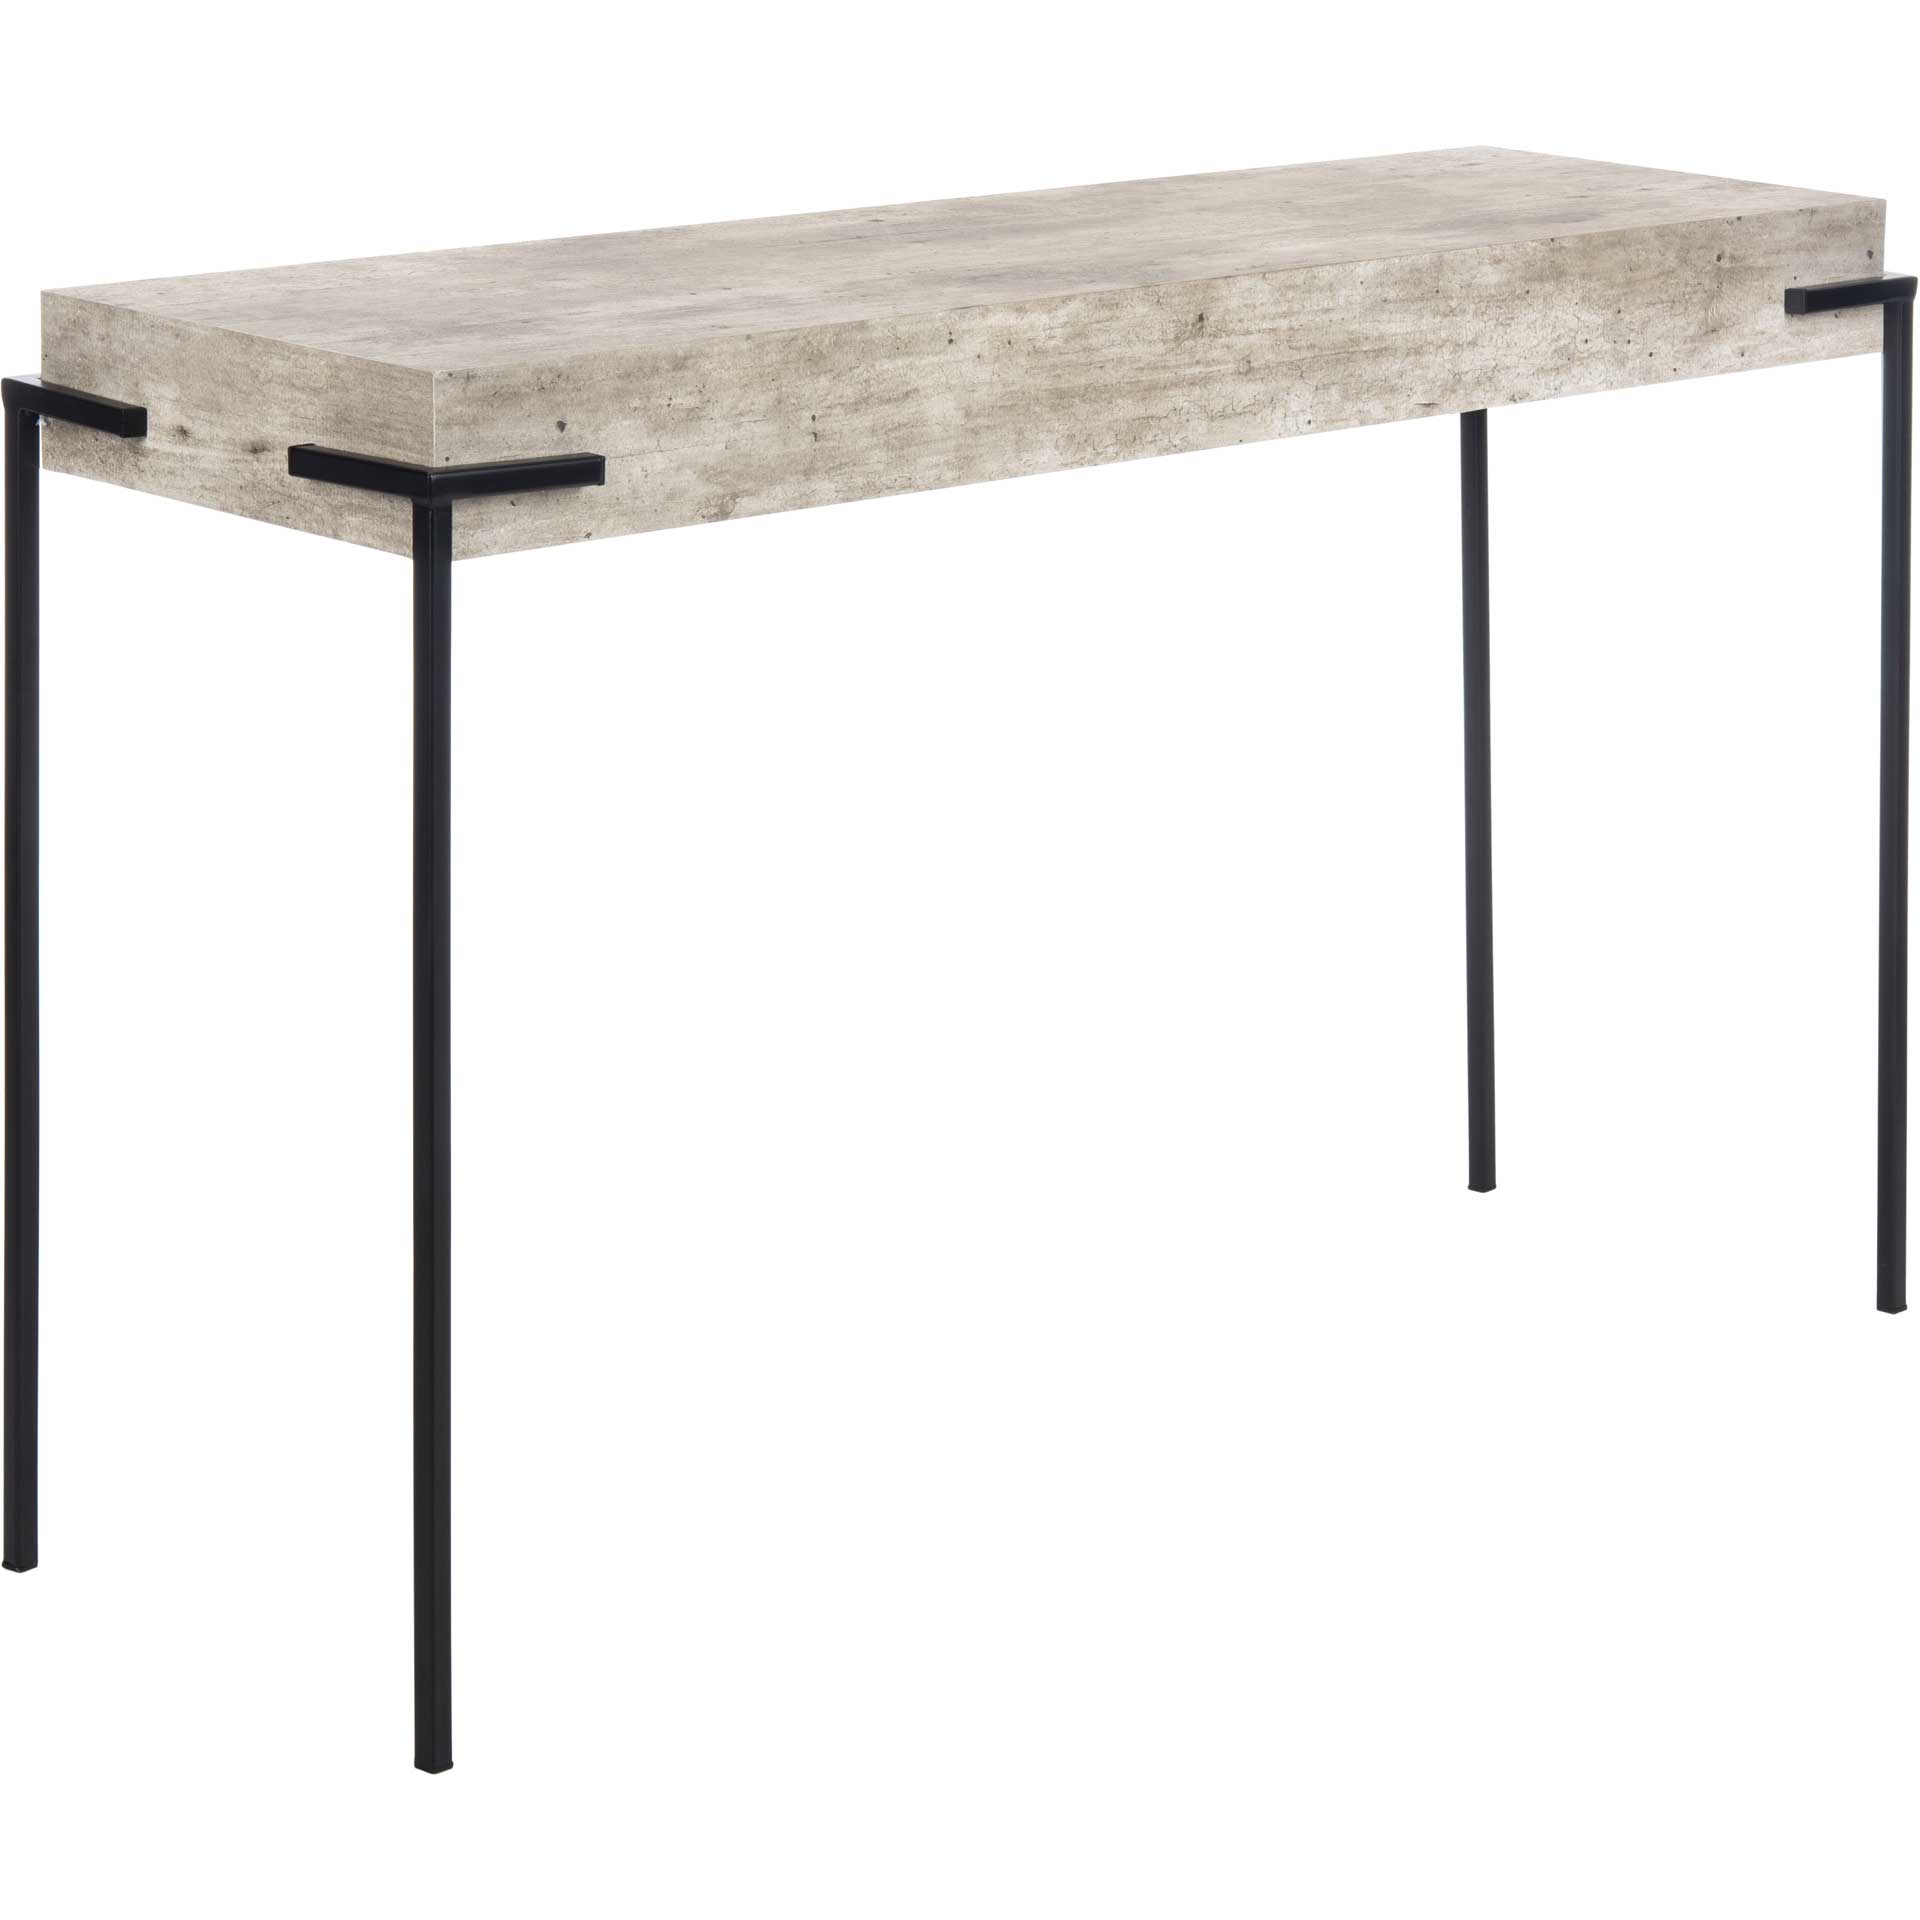 Elliot Rectangle Console Table Light Gray/Black